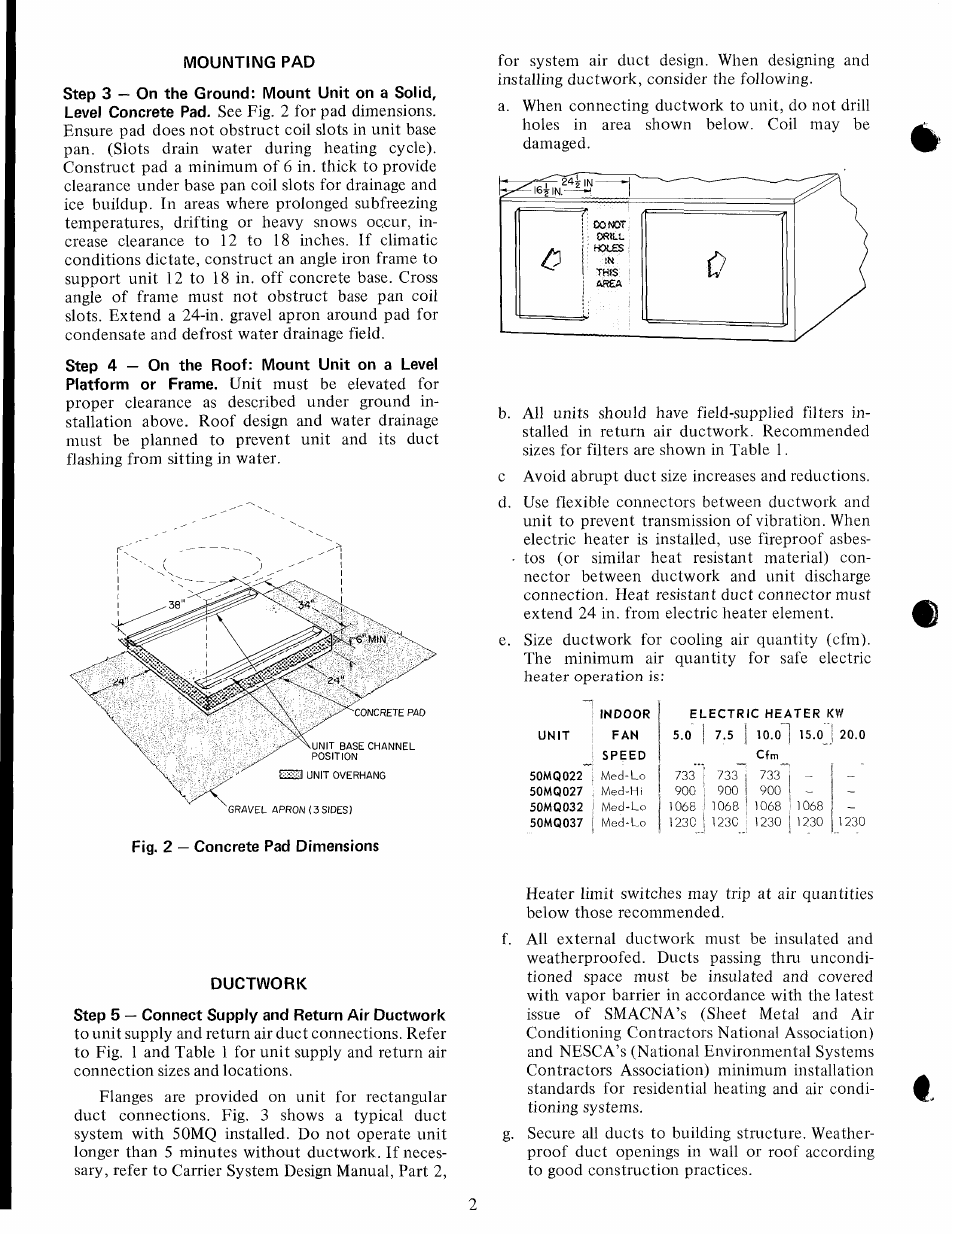 Mounting pad, Ductwork, Step 5 — connect supply and return air ductwork    Carrier